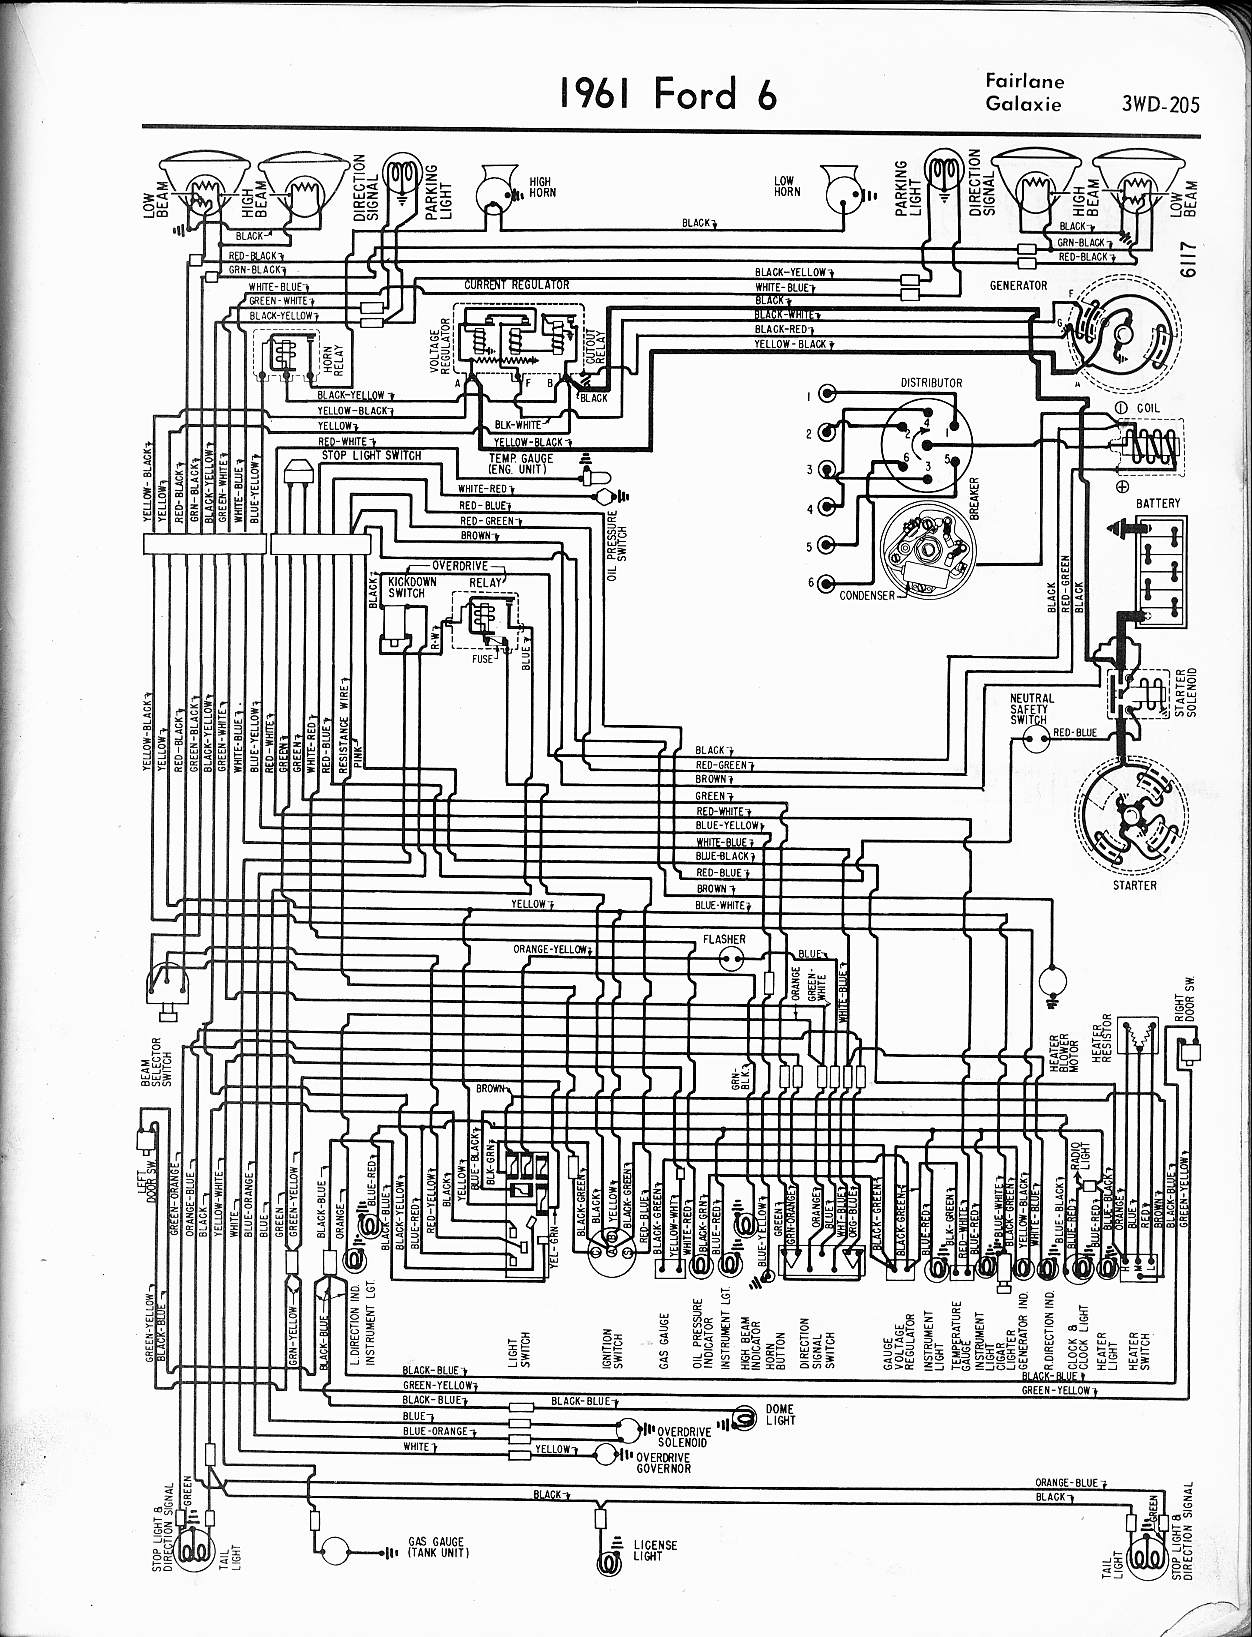 1968 Ford F 250 Starter Wiring Diagram Reveolution Of Ignition 1972 F250 Simple Rh David Huggett Co Uk F100 Turn Signal